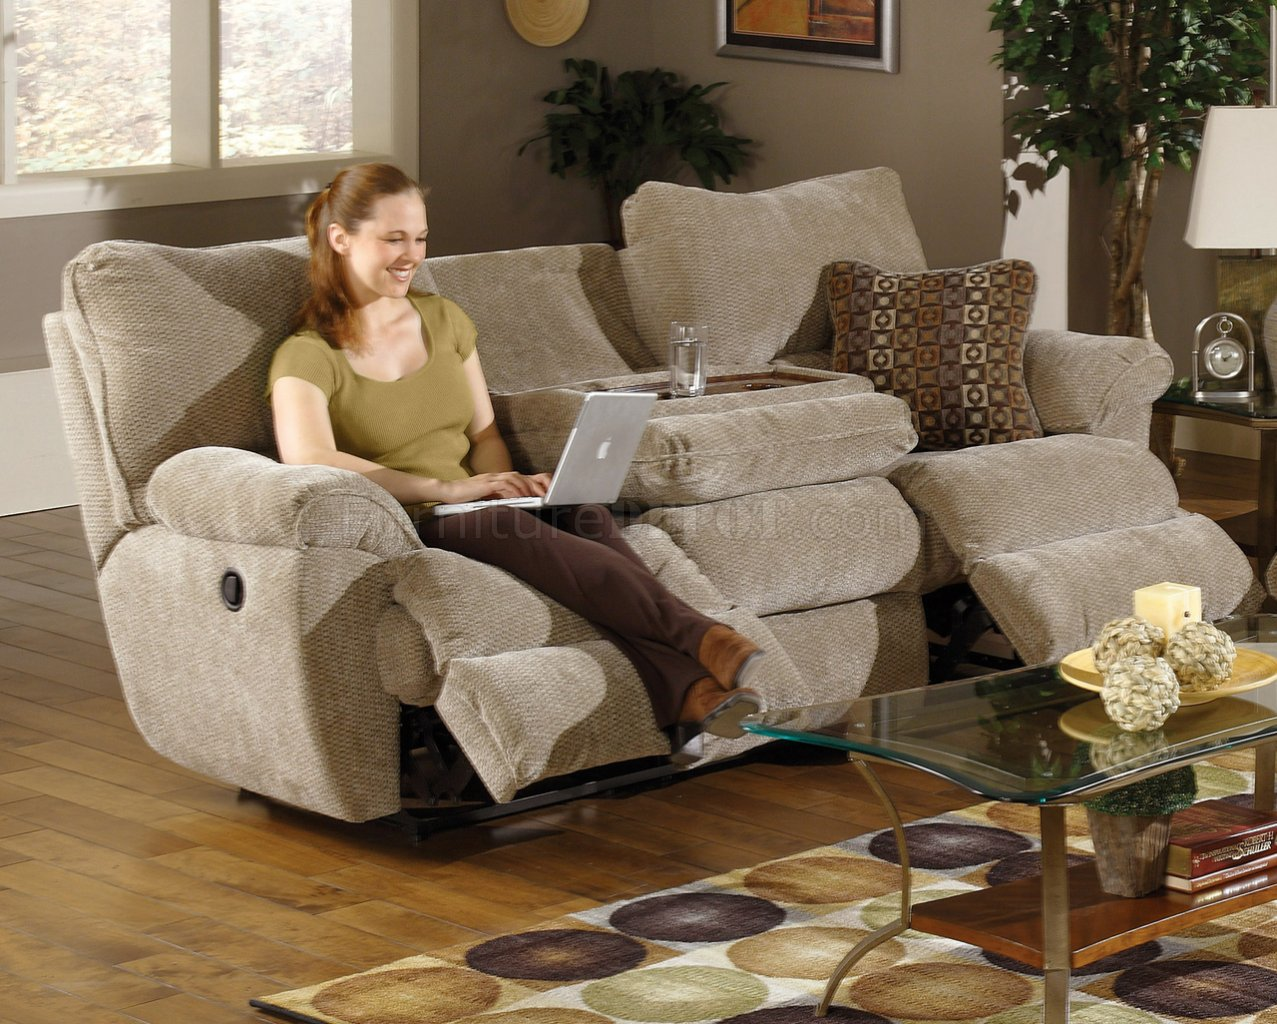 Sable/Earth Fabric Madison Reclining Sofa u0026 Loveseat Set & Earth Fabric Madison Reclining Sofa u0026 Loveseat Set islam-shia.org